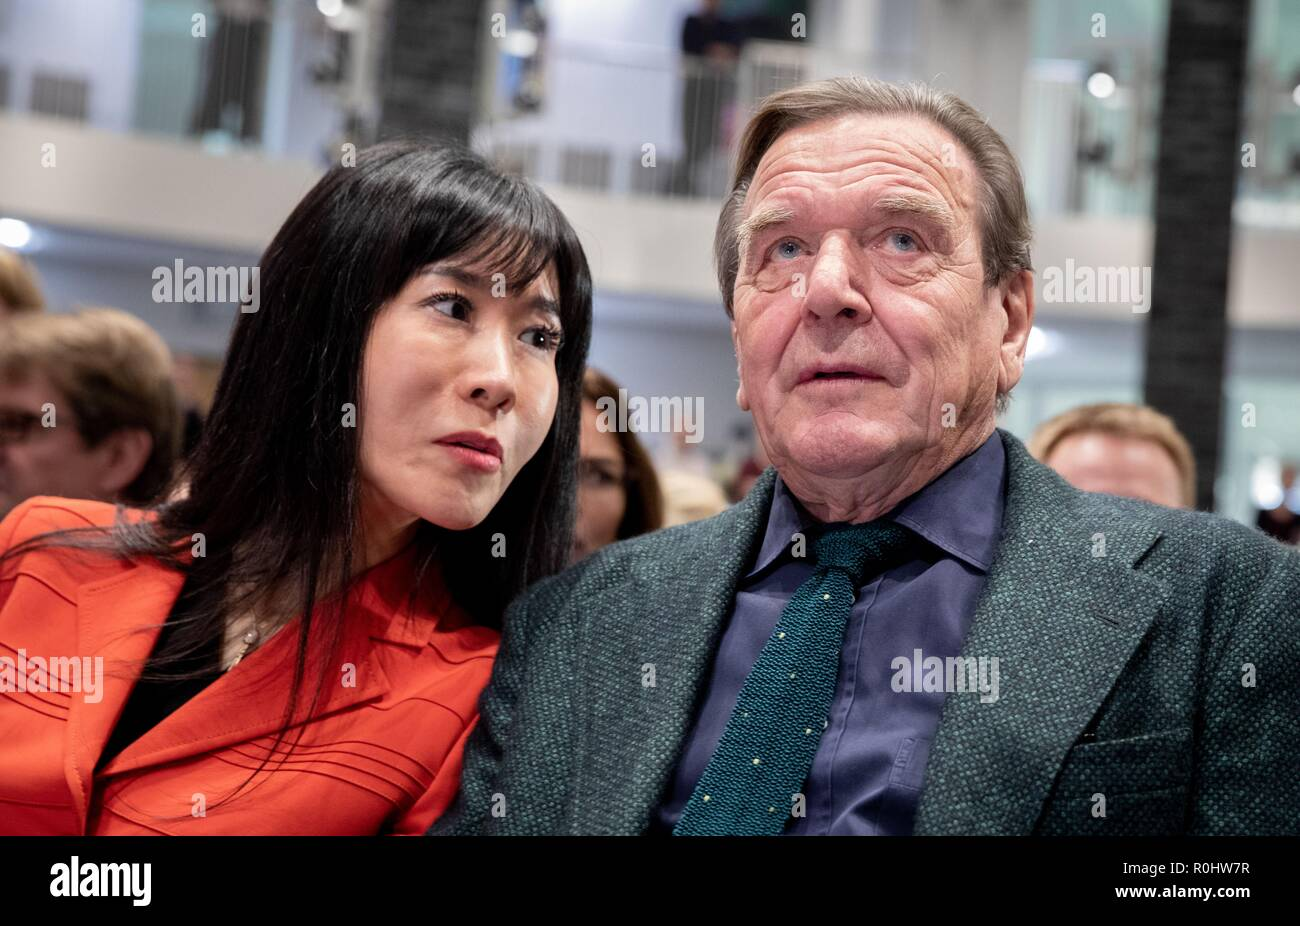 Berlin, Germany. 05th Nov, 2018. Schröder-Kim So-yeon and Gerhard Schröder (SPD), former Chancellor of the Federal Republic of Germany, sit together at the beginning of the panel discussion: The 'red-green project' for the 20th anniversary of Gerhard Schröder's election as Chancellor of the Friedrich-Ebert-Stiftung. Credit: Kay Nietfeld/dpa/Alamy Live News - Stock Image